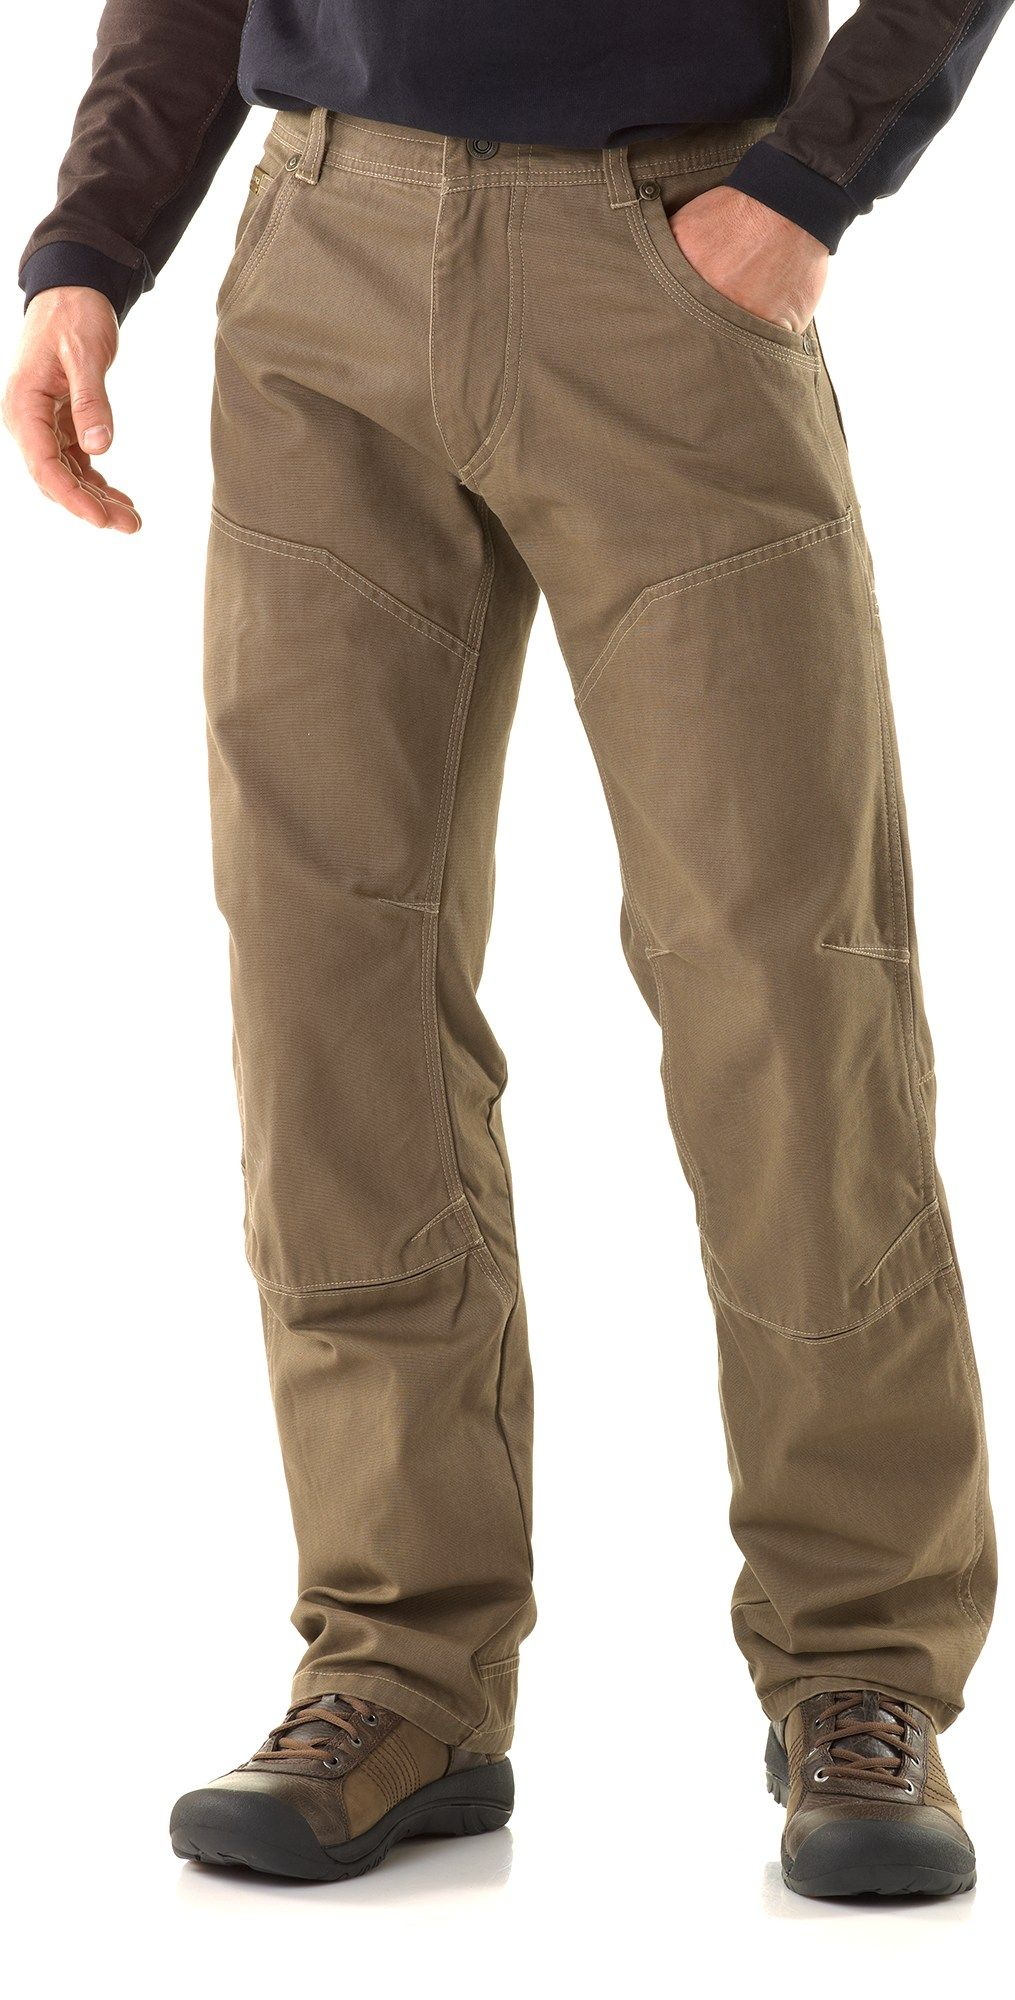 Kuhl - The Law Pants - Excellent cold weather hiking pant ...